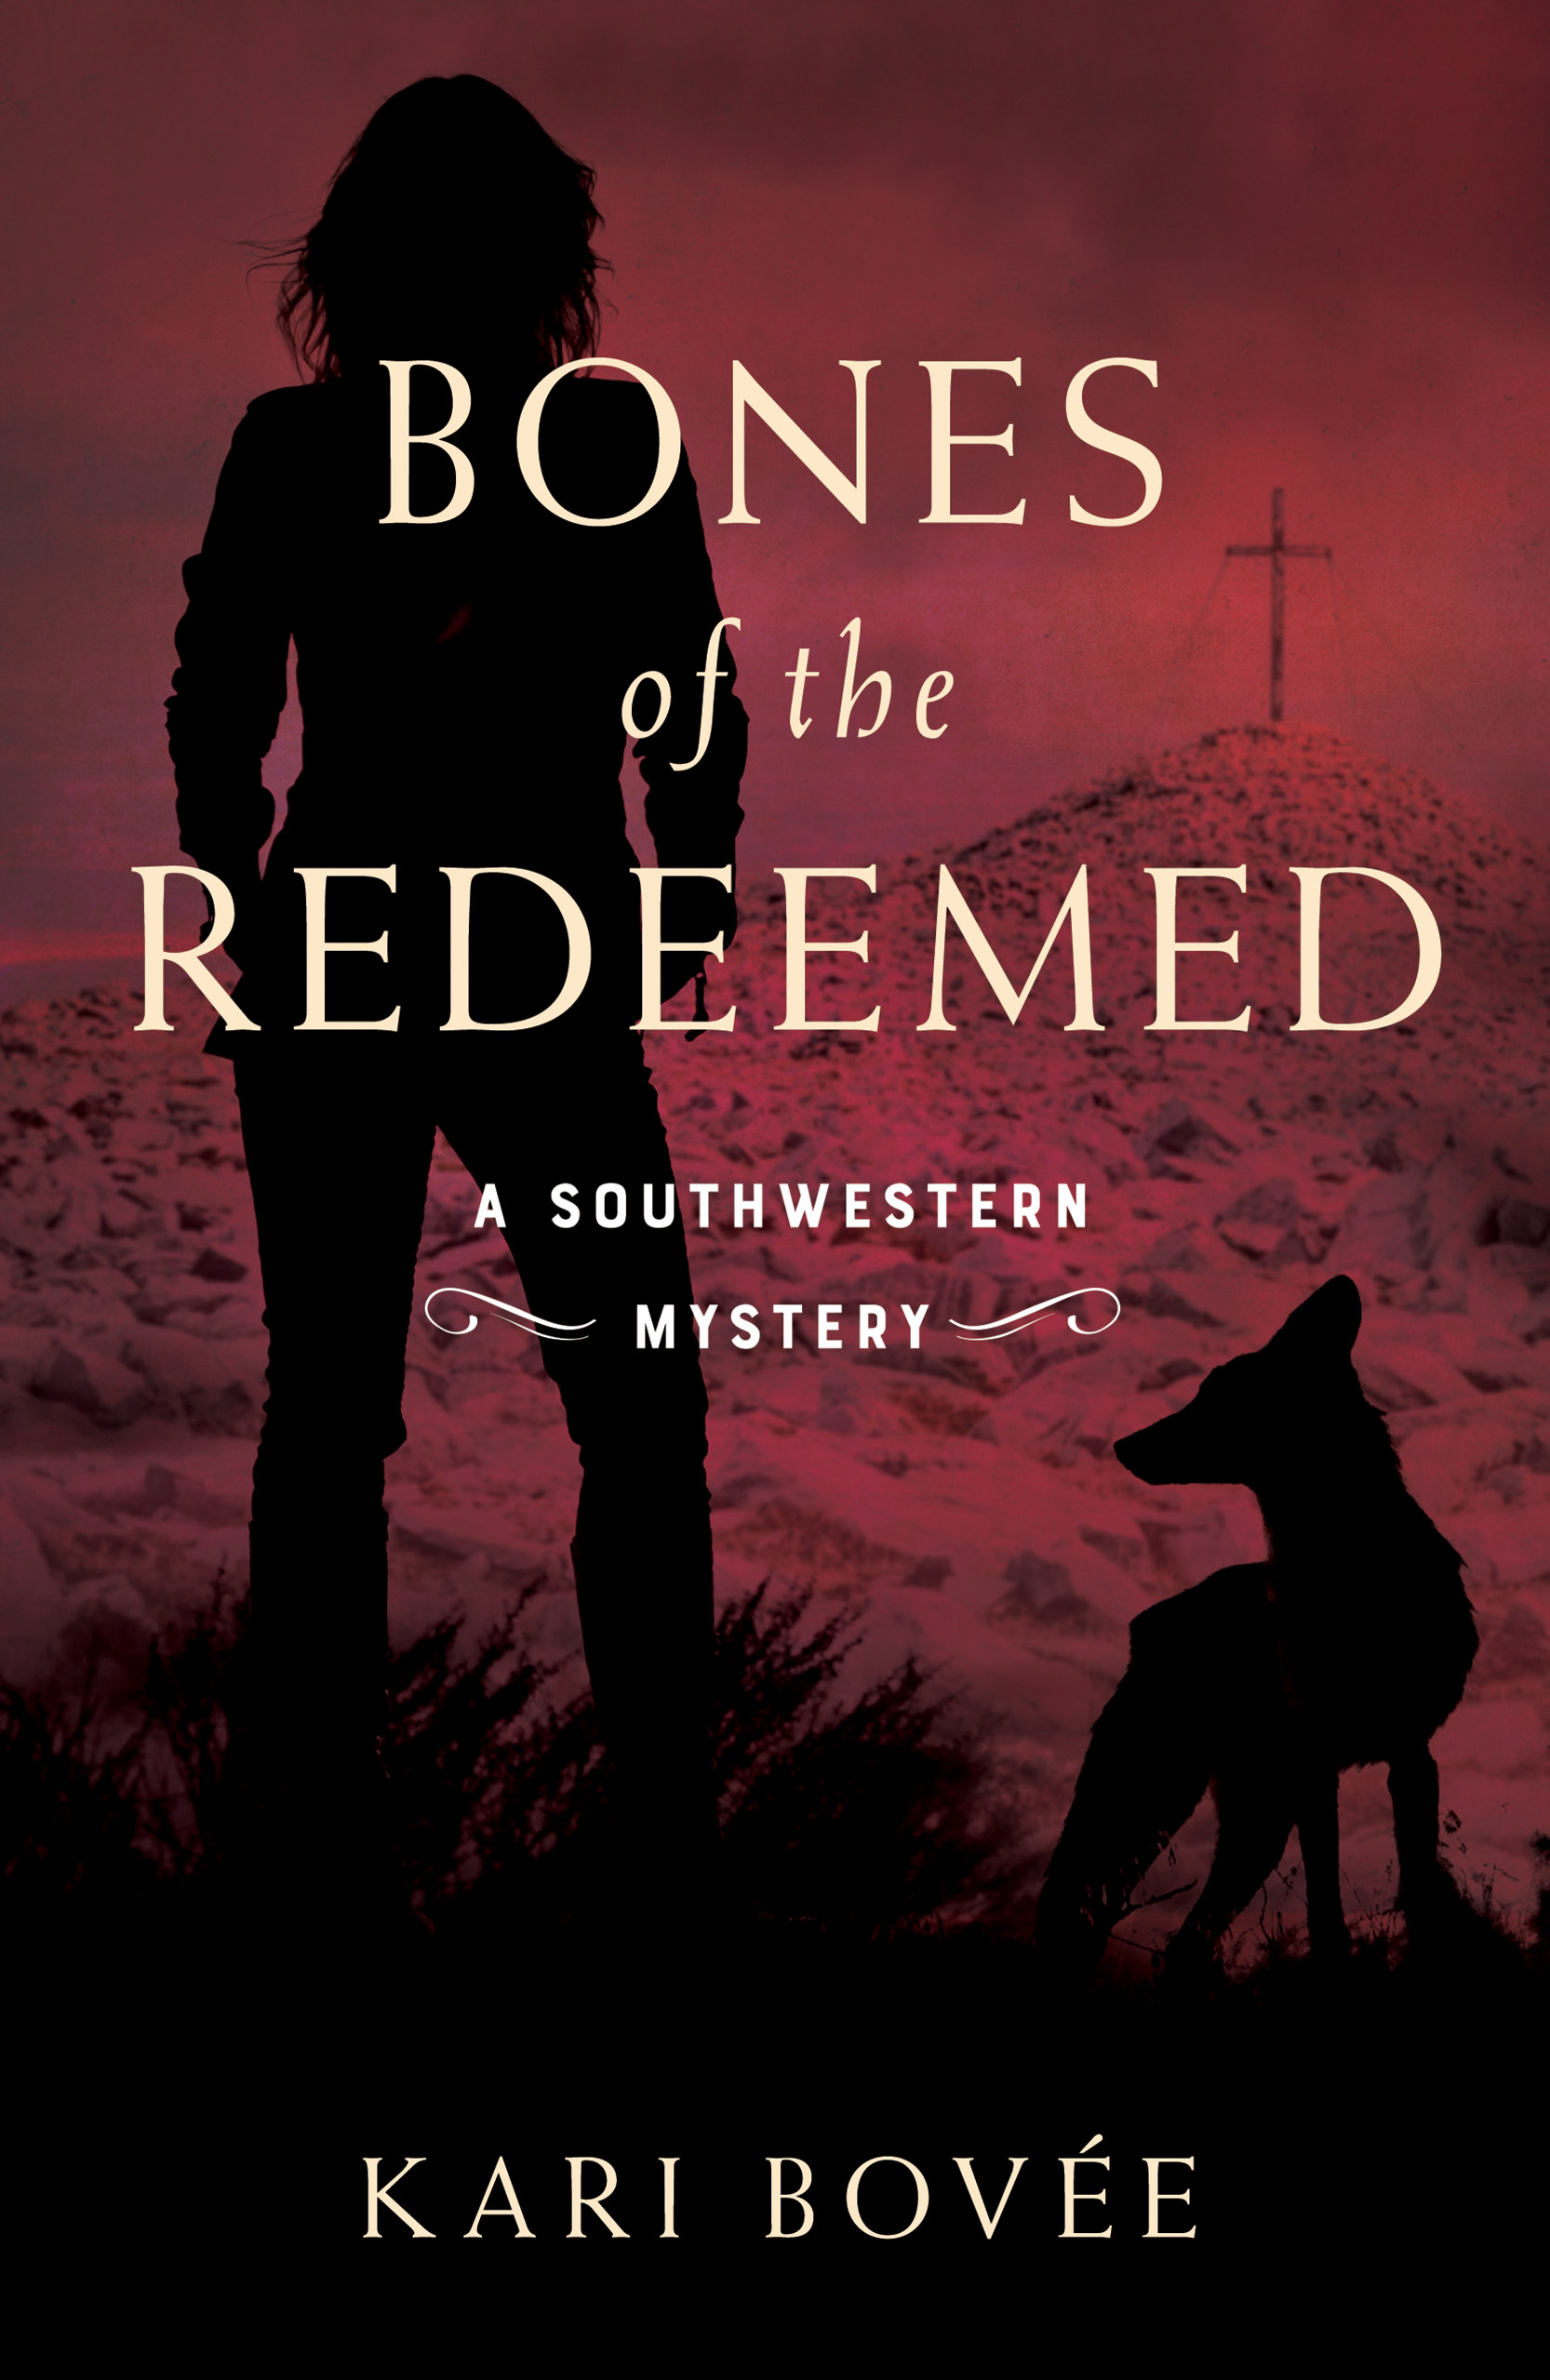 Bones of the Redeemed- Historical Fiction Books to Read by Kari Bovée